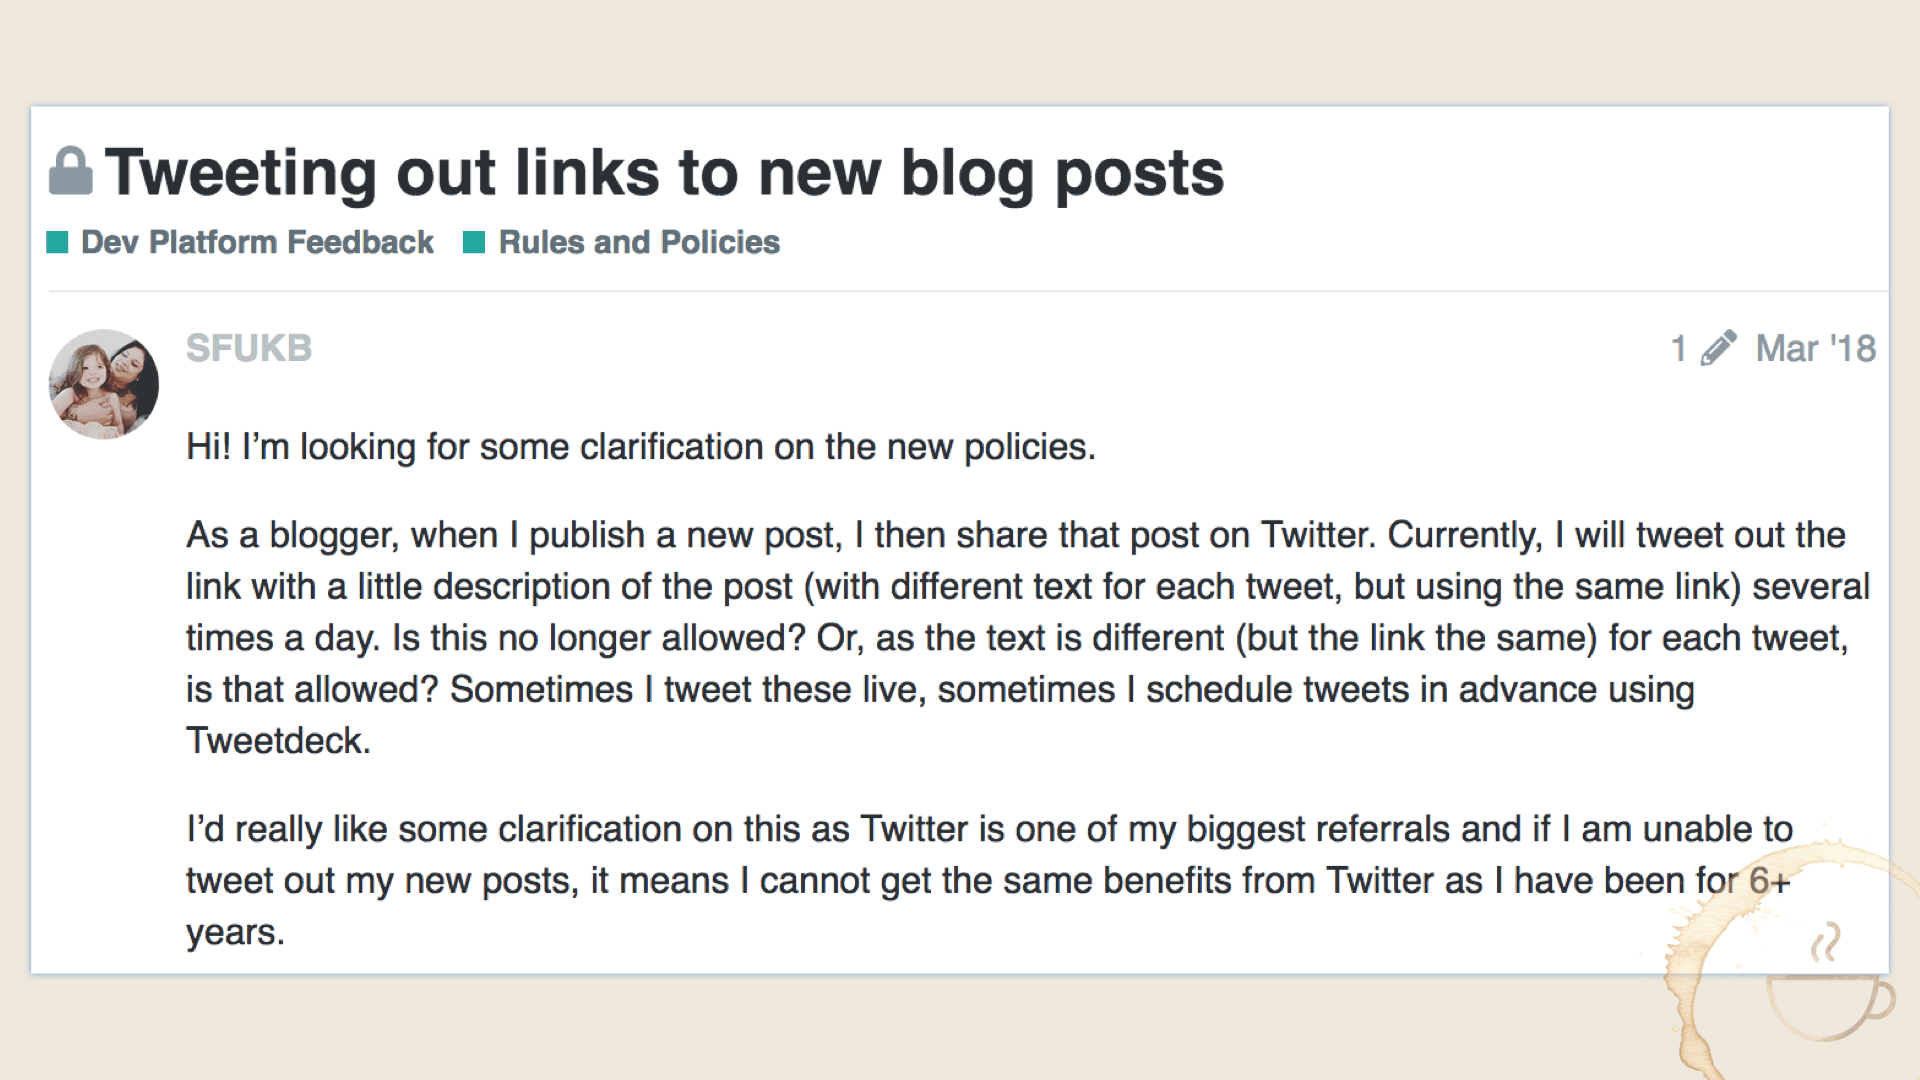 Will my Twitter account be suspended in the tweets links to my new blog posts?